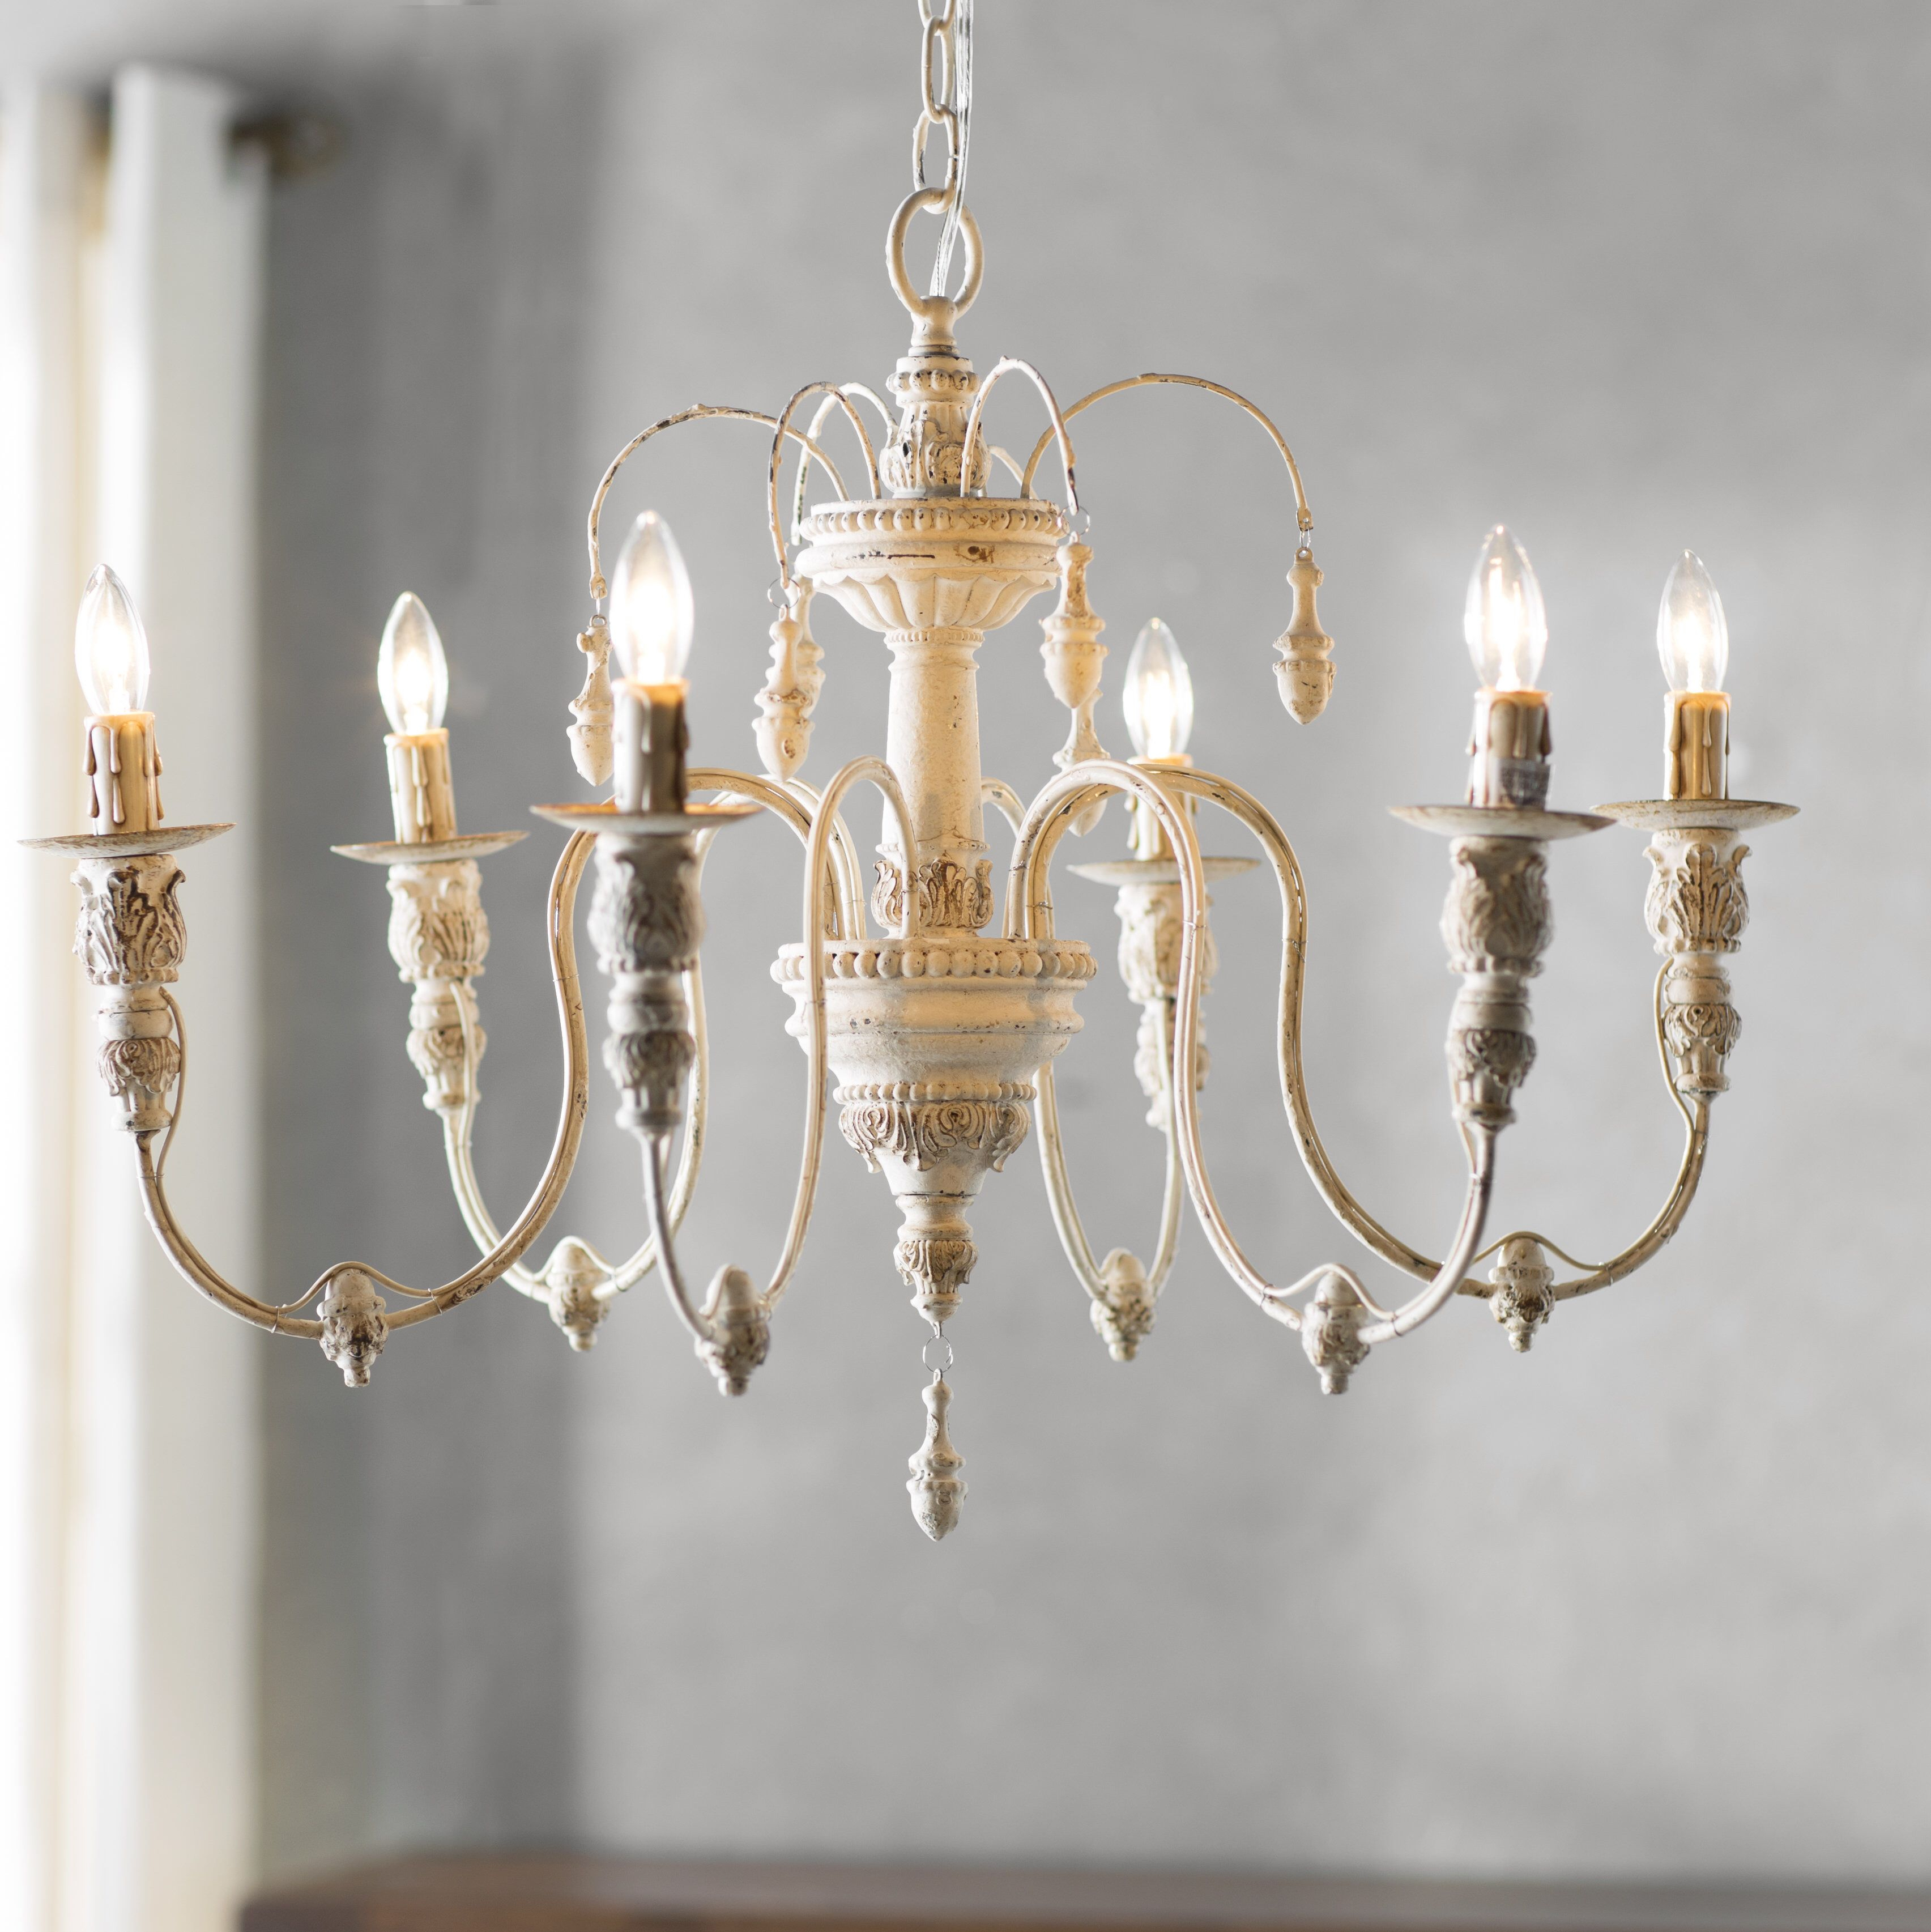 Paladino 6 Light Chandelier In 2019   Dining Room With Regard To Paladino 6 Light Chandeliers (View 4 of 30)